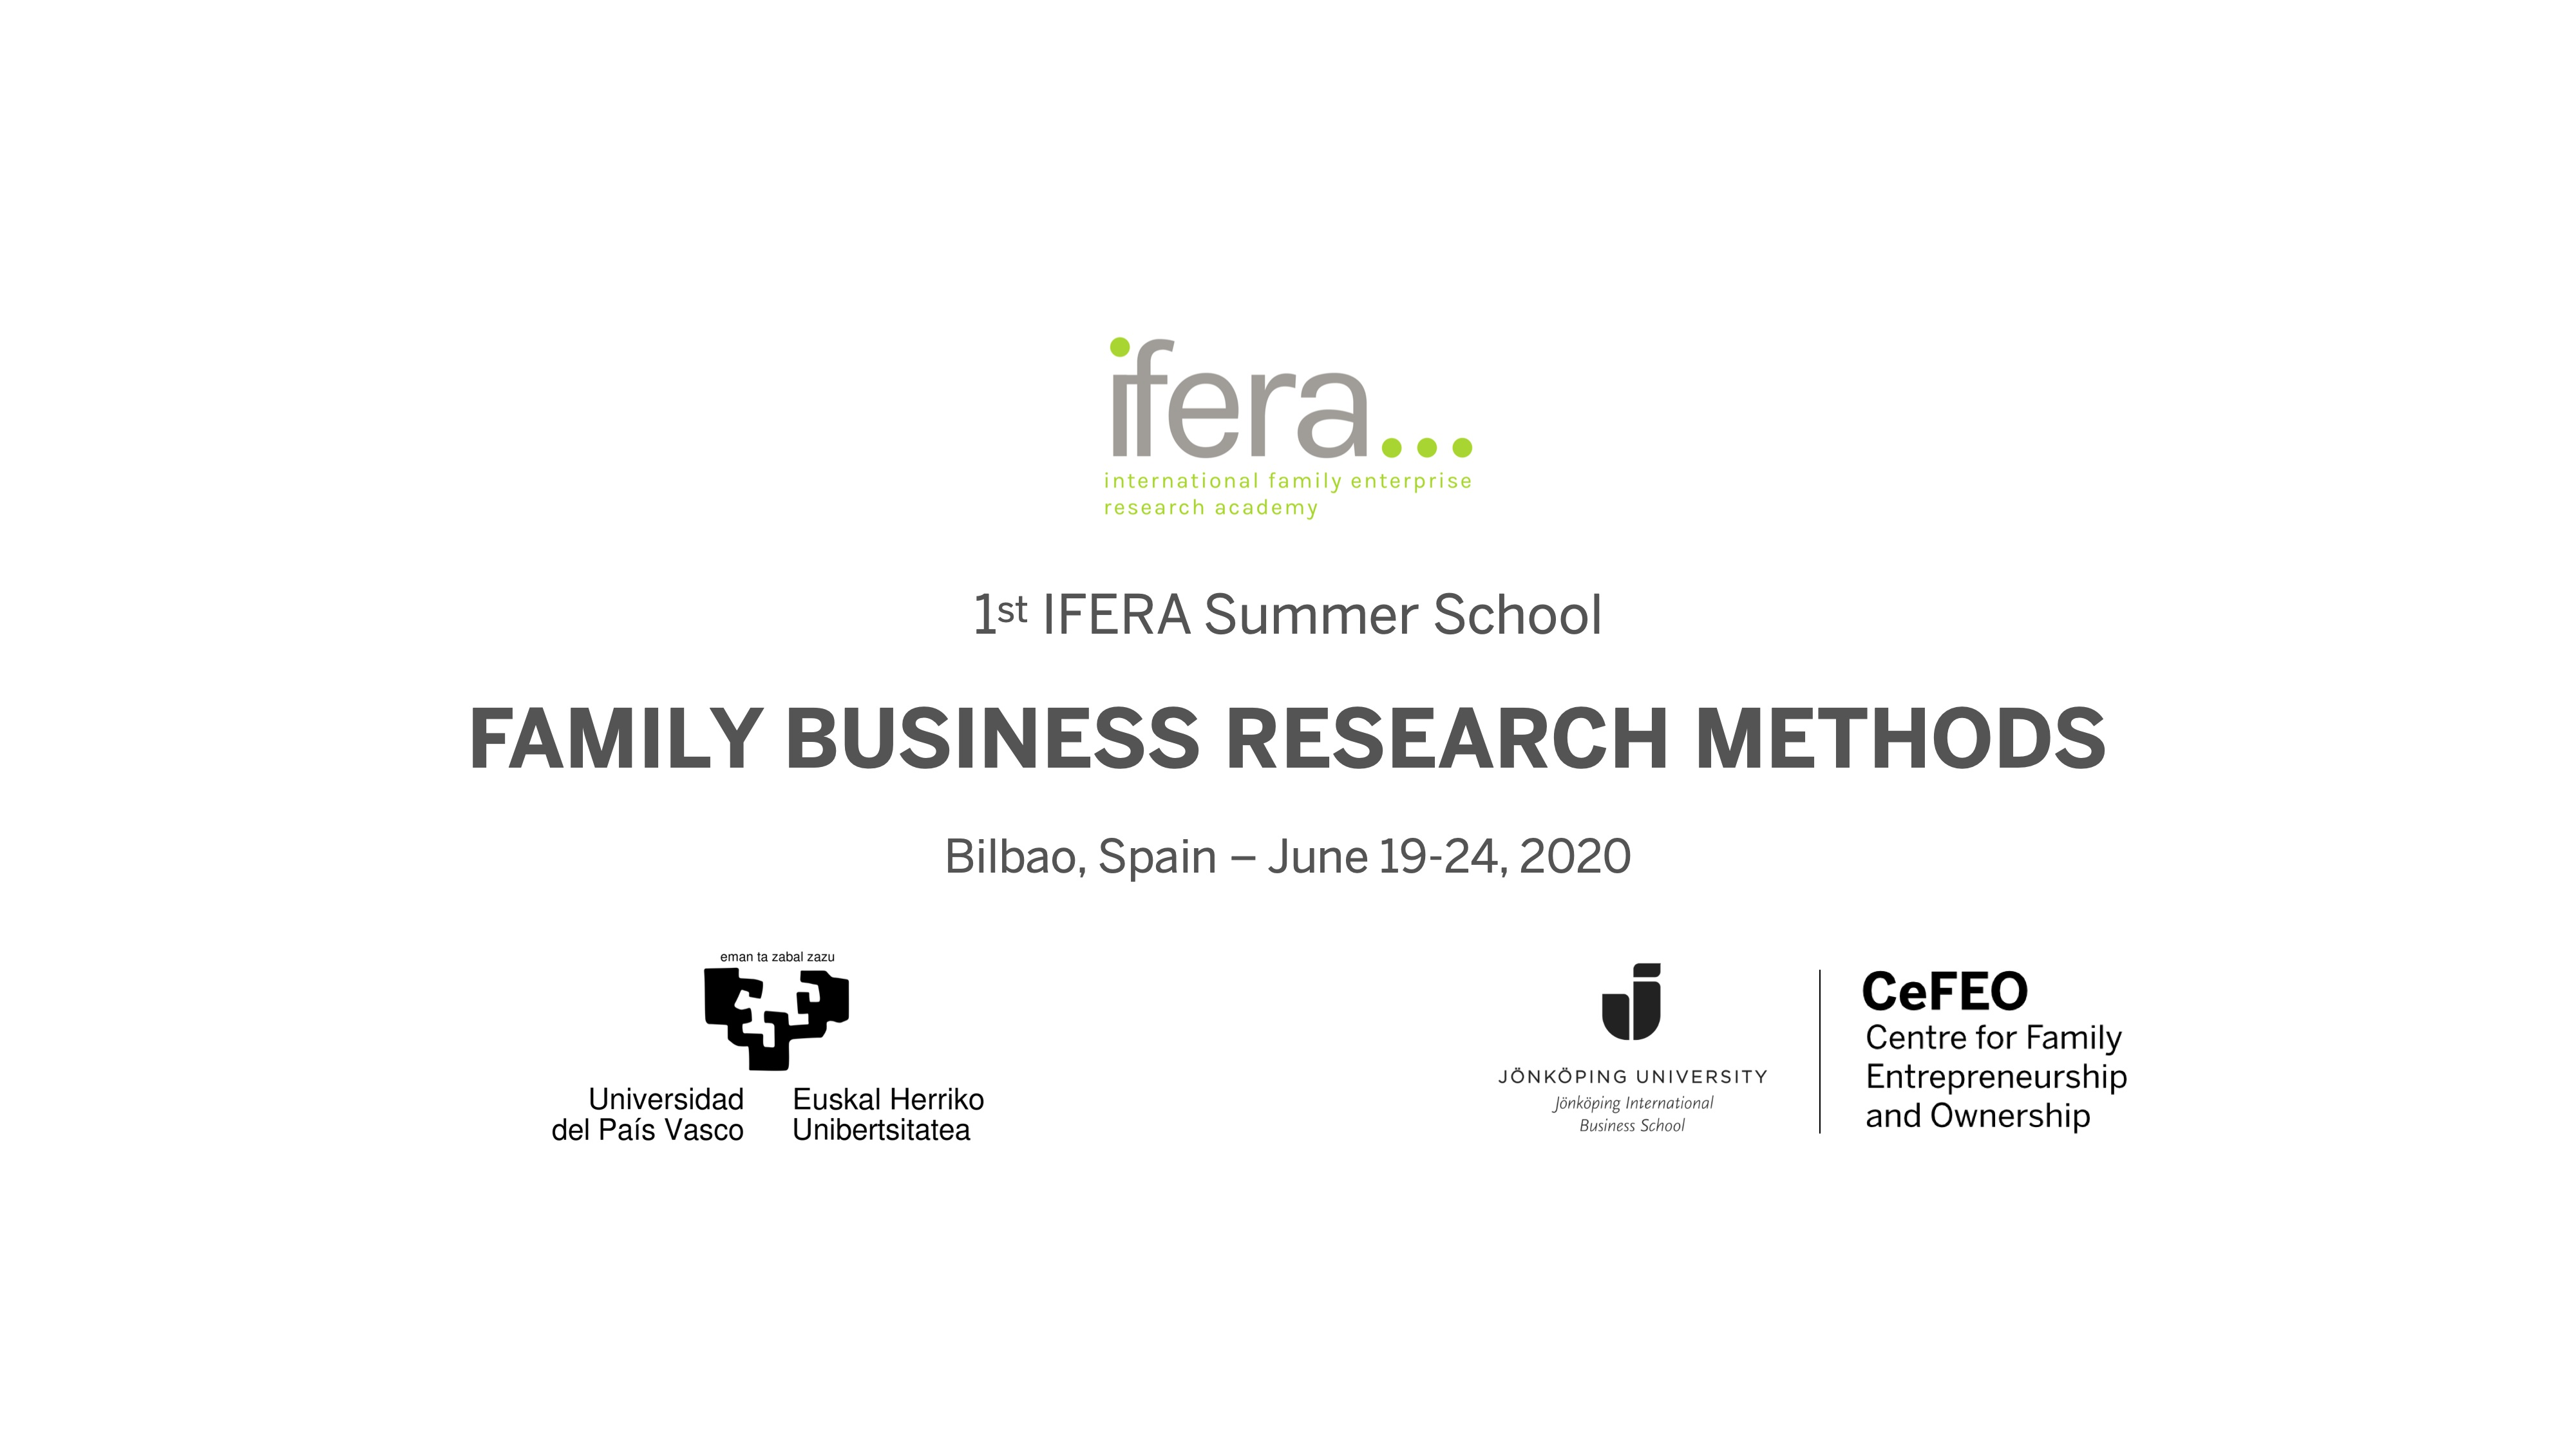 Text: Family business research methods - IFERA summer school